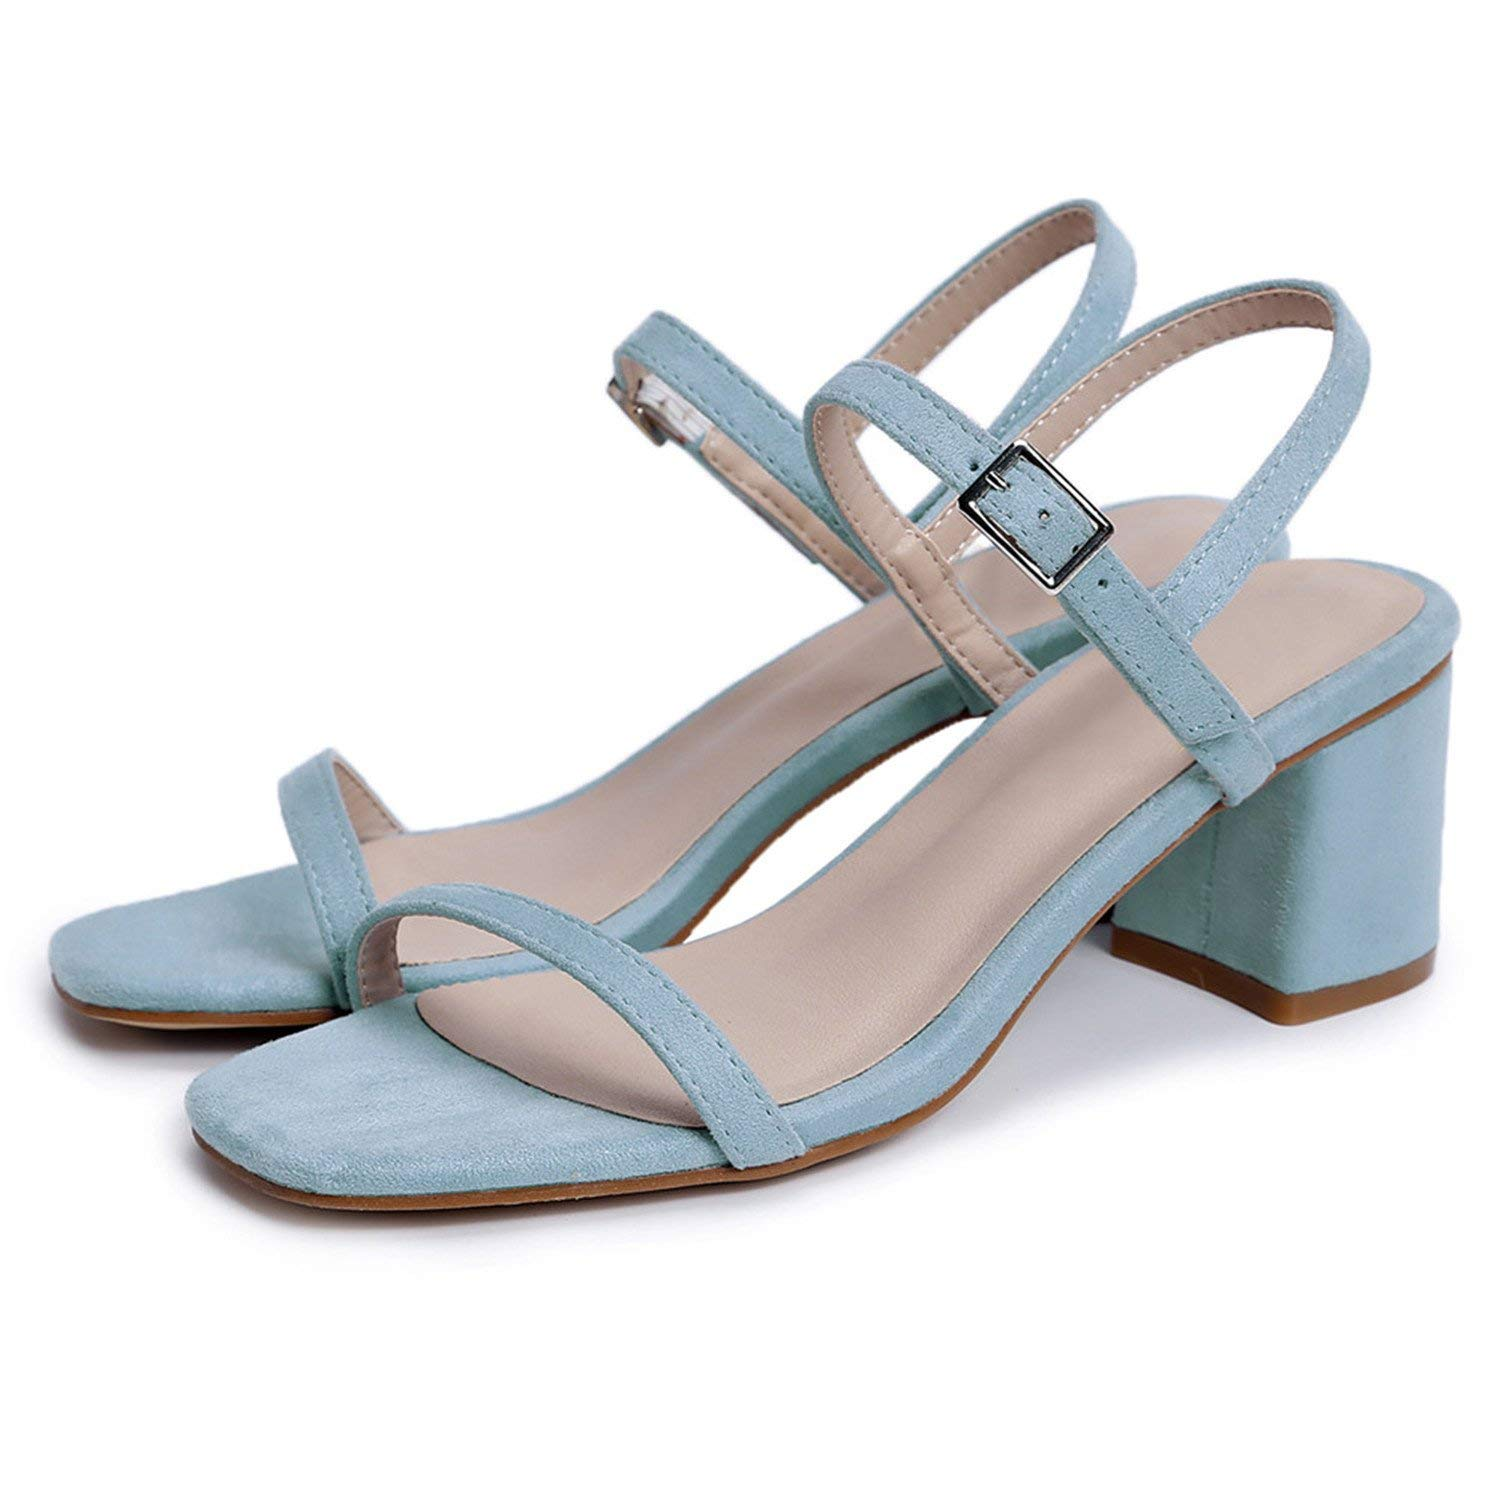 14eedaa218e Get Quotations · Fashion Summer Ladies Shoes Buckle Casual Shoes Woman  Square Heel Elegant Women Suede Leather High Heels